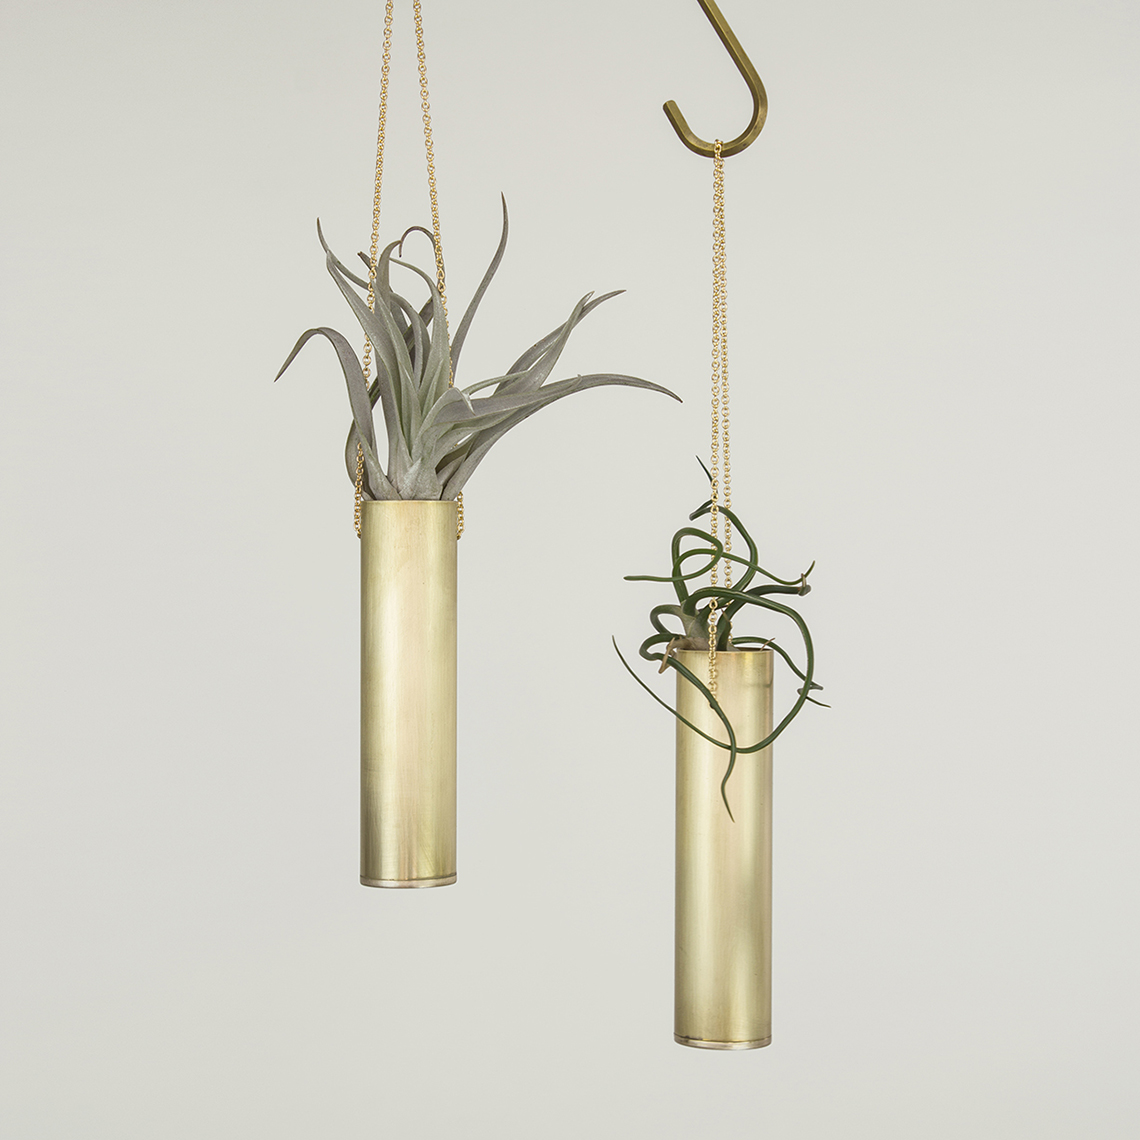 Brass Wall Hangings, $75/$128 pair,  SHOP